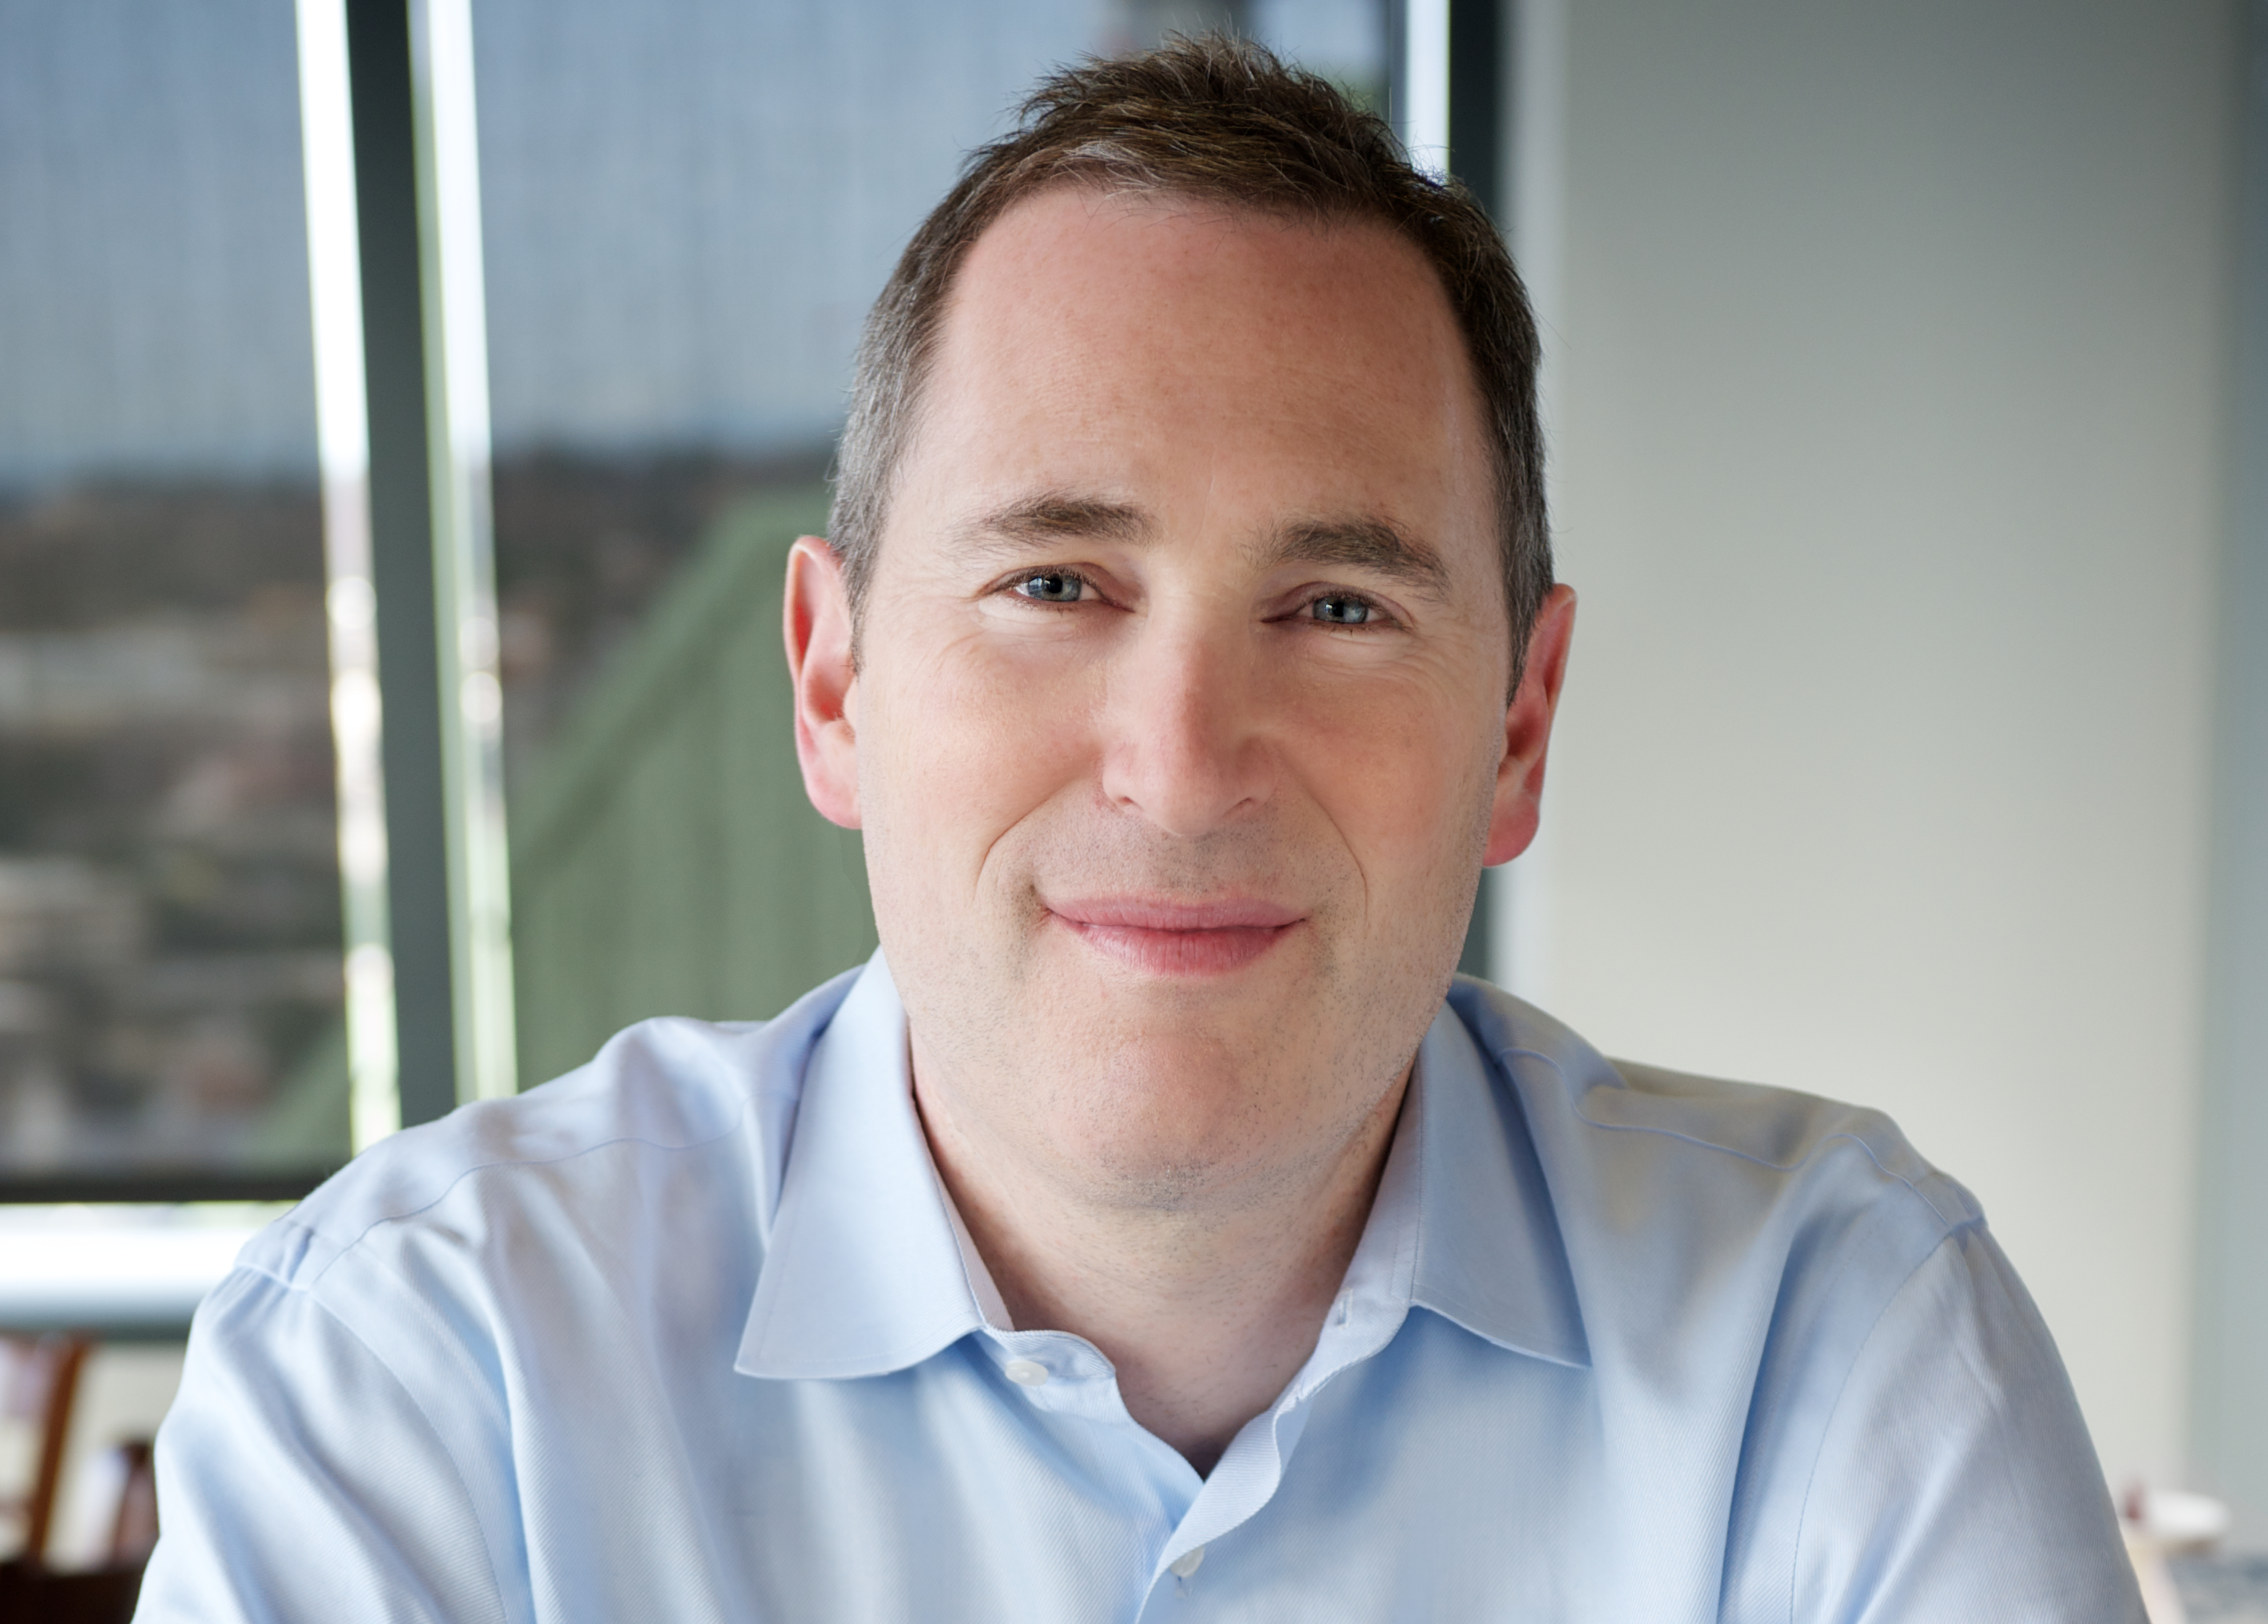 Andy Jassy is the most powerful Amazon executive not named Jeff